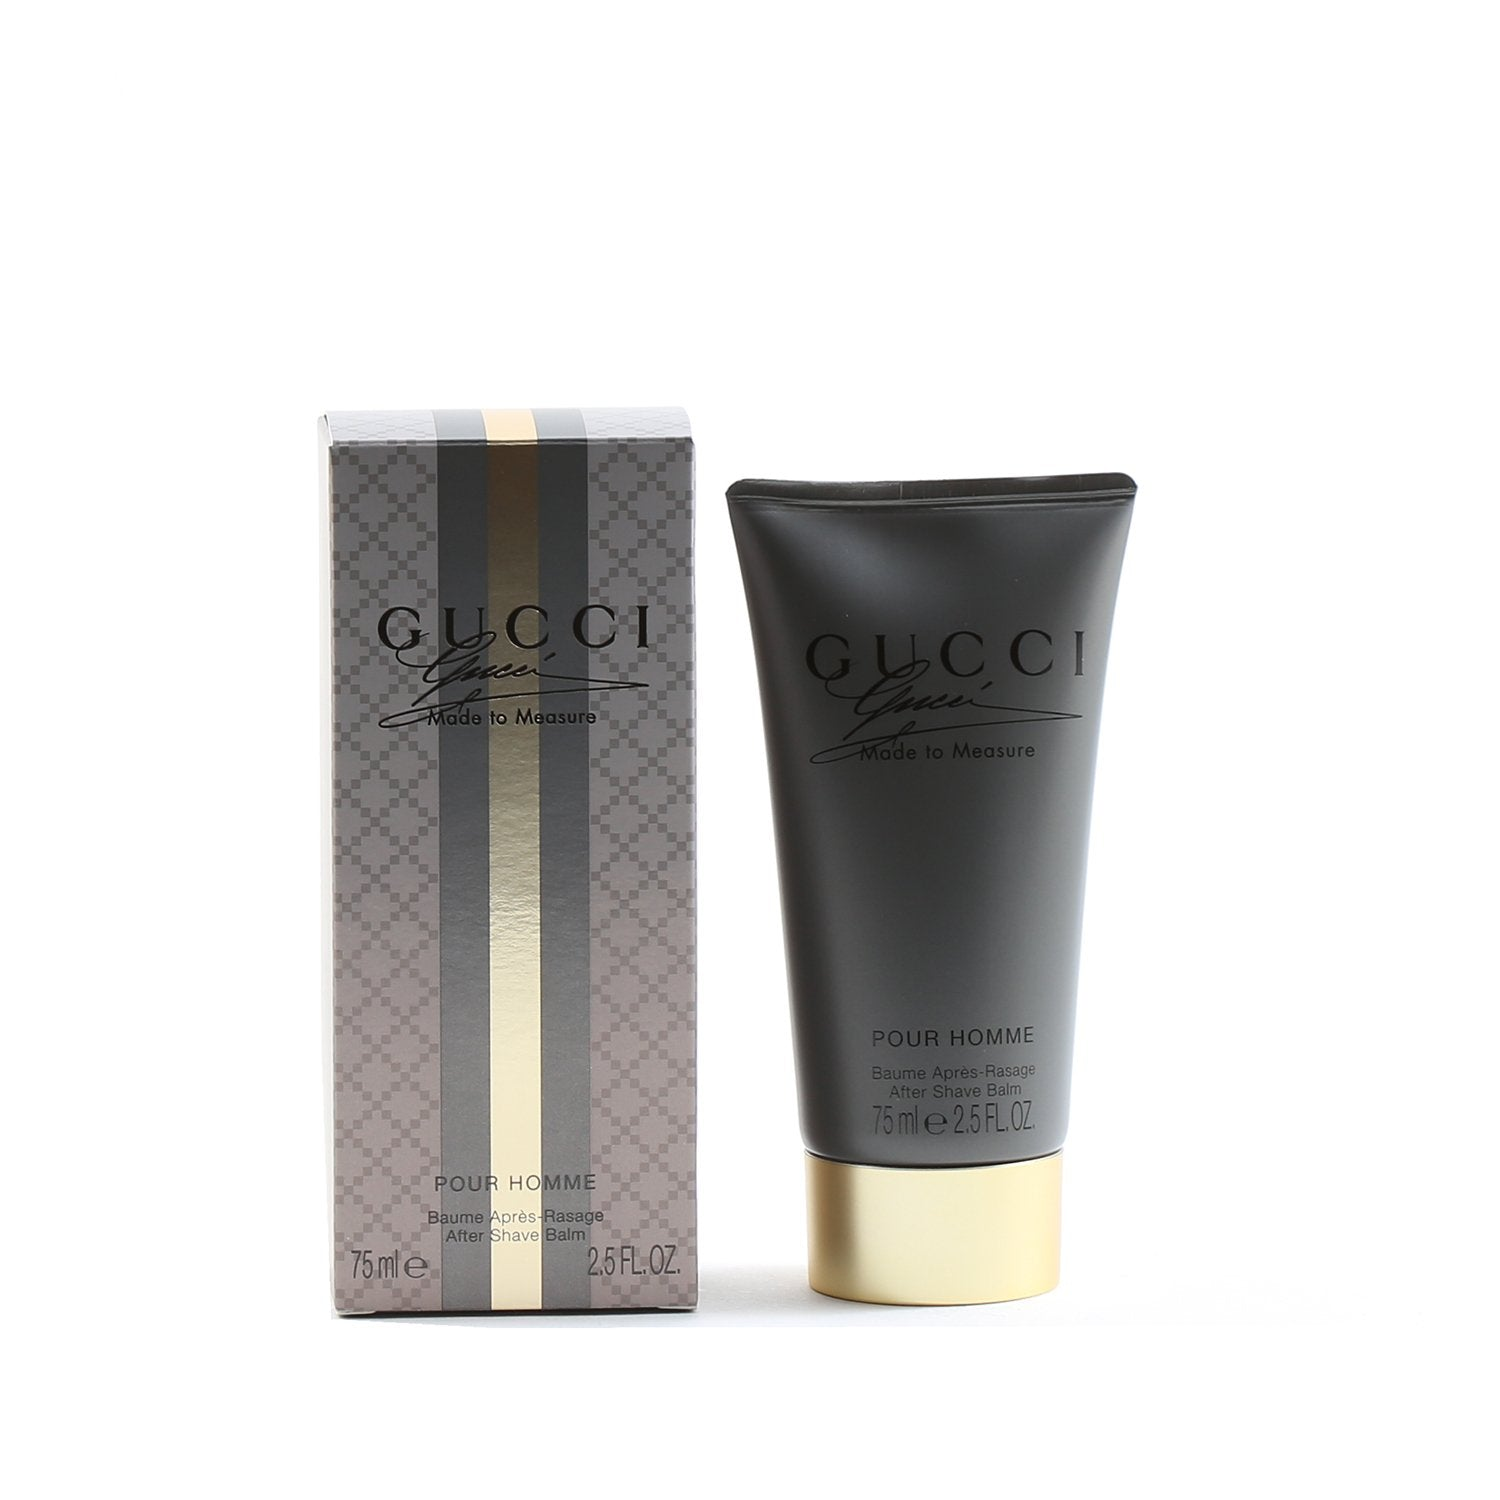 Cologne - GUCCI MADE TO MEASURE POUR HOMME - AFTER SHAVE BALM, 2.5 OZ